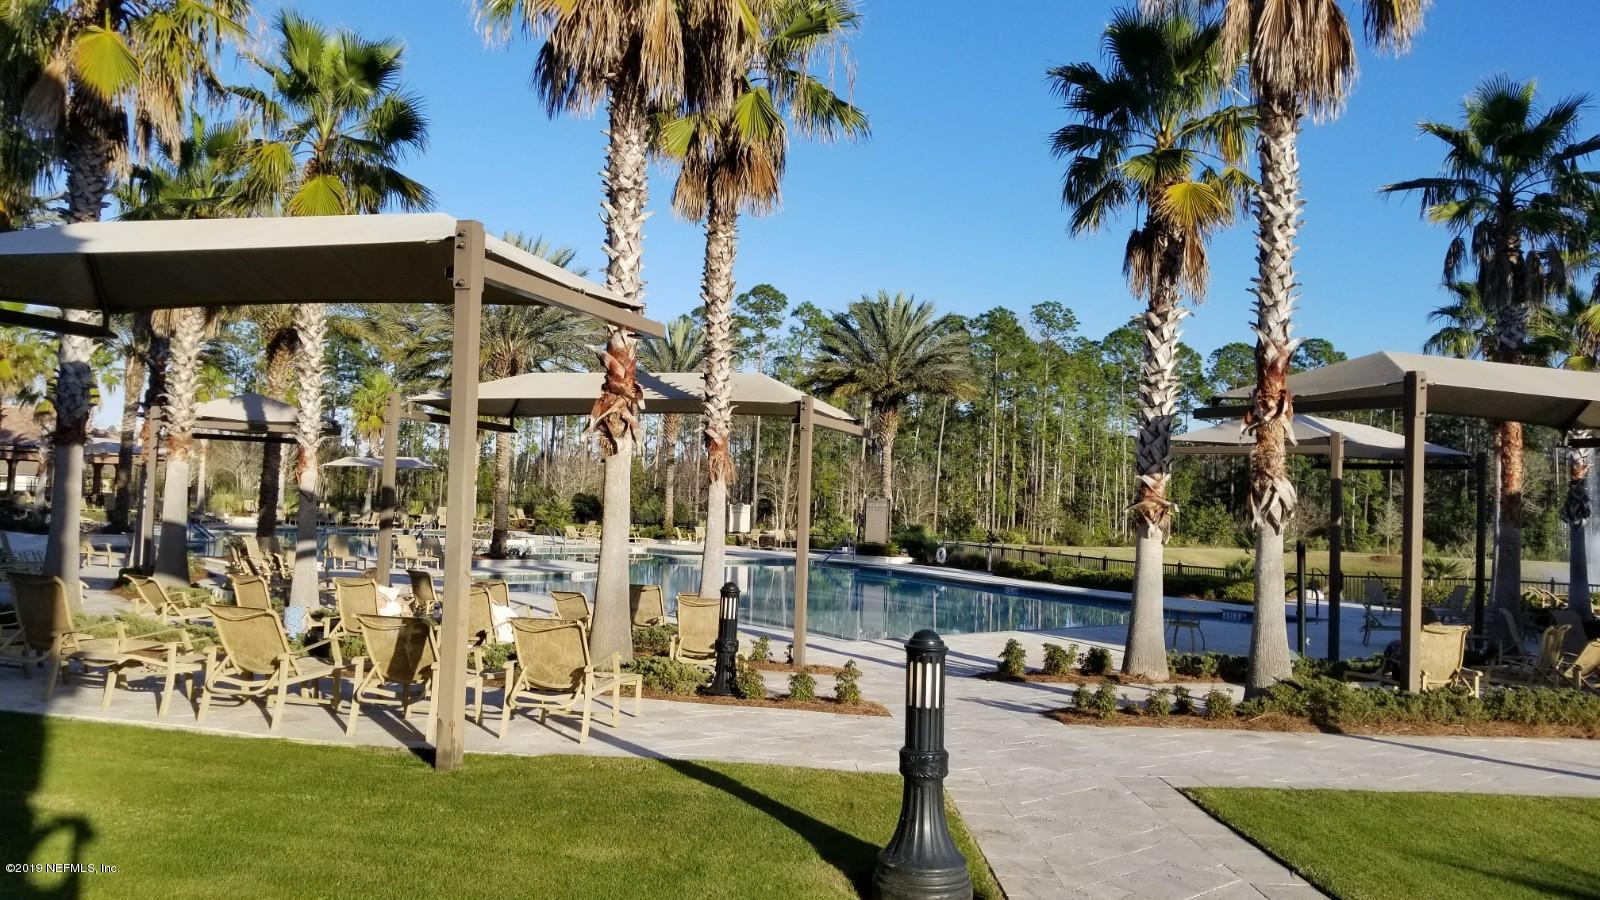 583 ORCHARD PASS, PONTE VEDRA, FLORIDA 32081, 2 Bedrooms Bedrooms, ,2 BathroomsBathrooms,Residential - condos/townhomes,For sale,ORCHARD PASS,984890